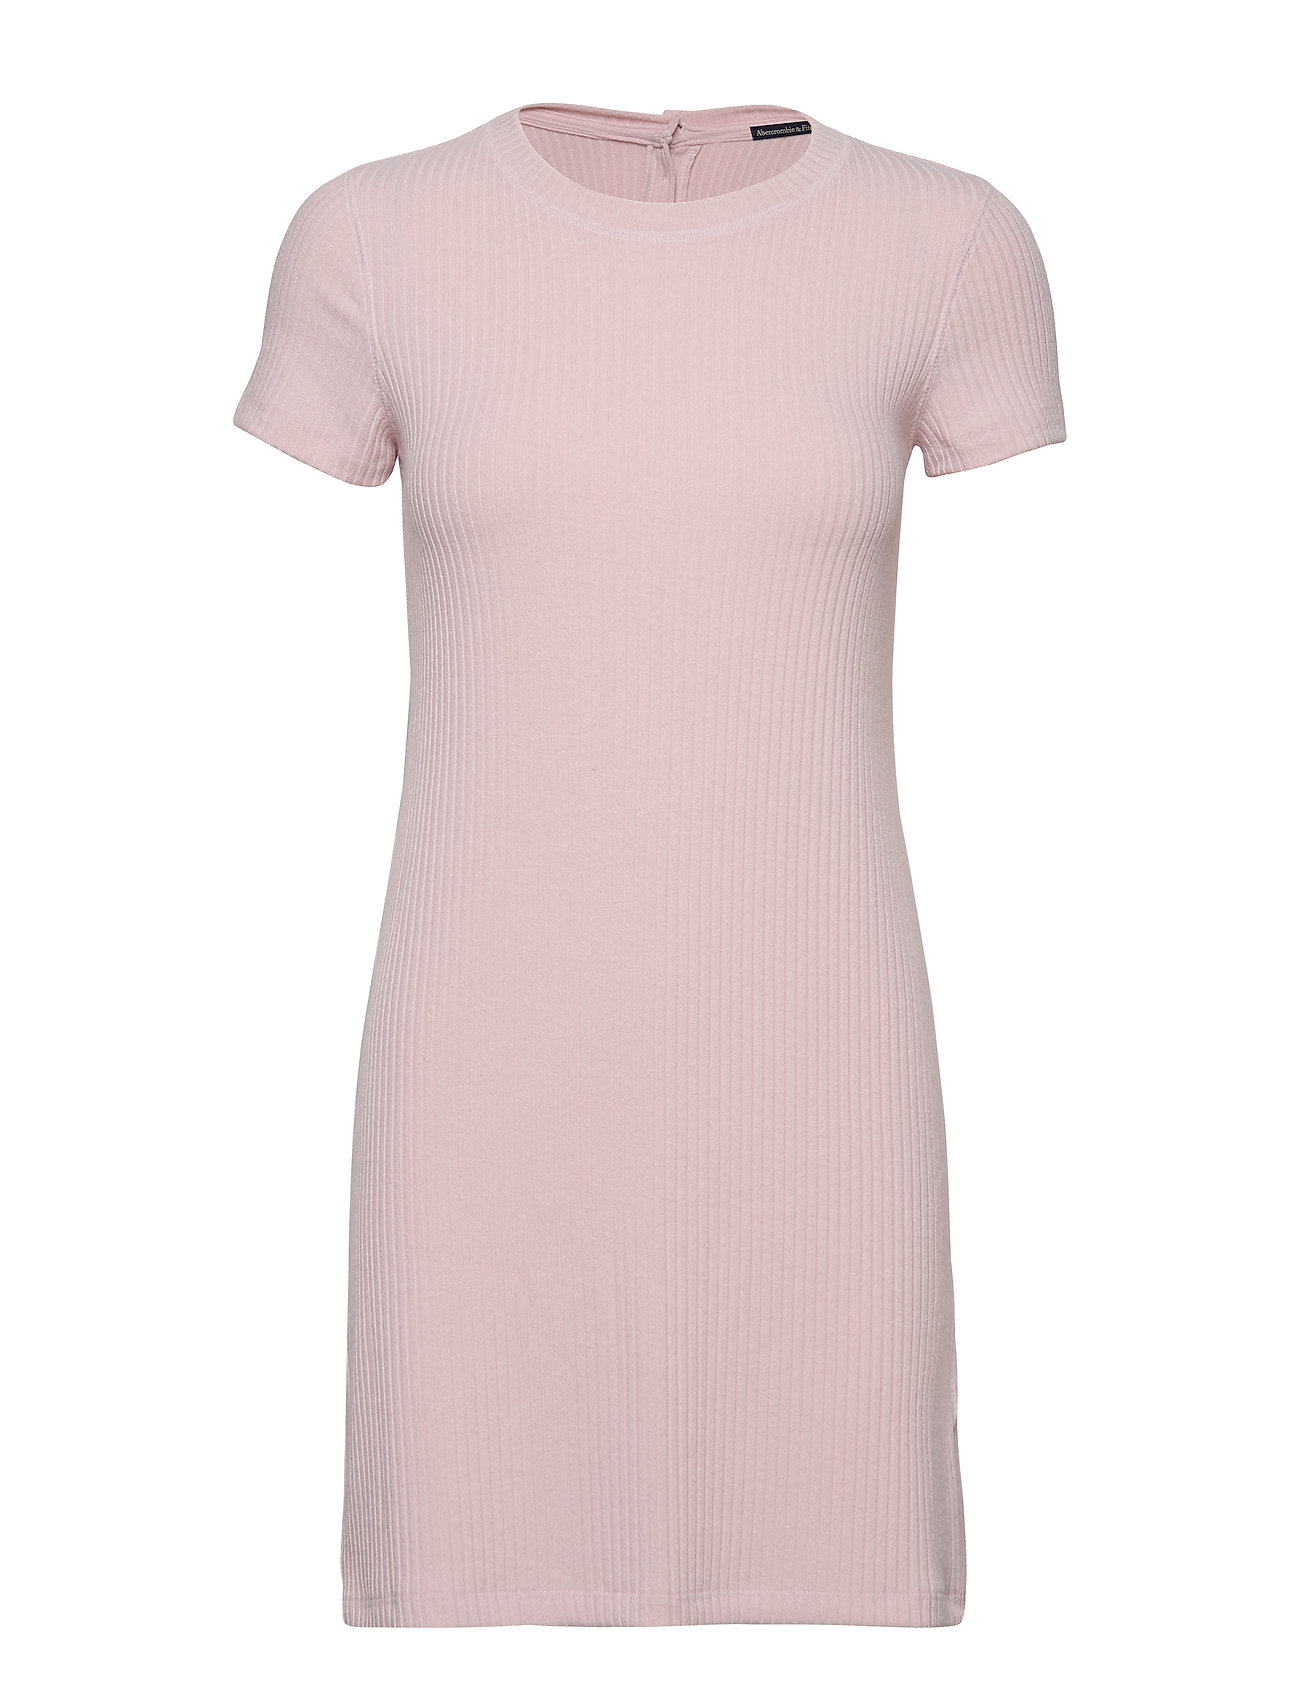 Abercrombie & Fitch Short Sleeve Rib Knit Dress - LIGHT PINK DD